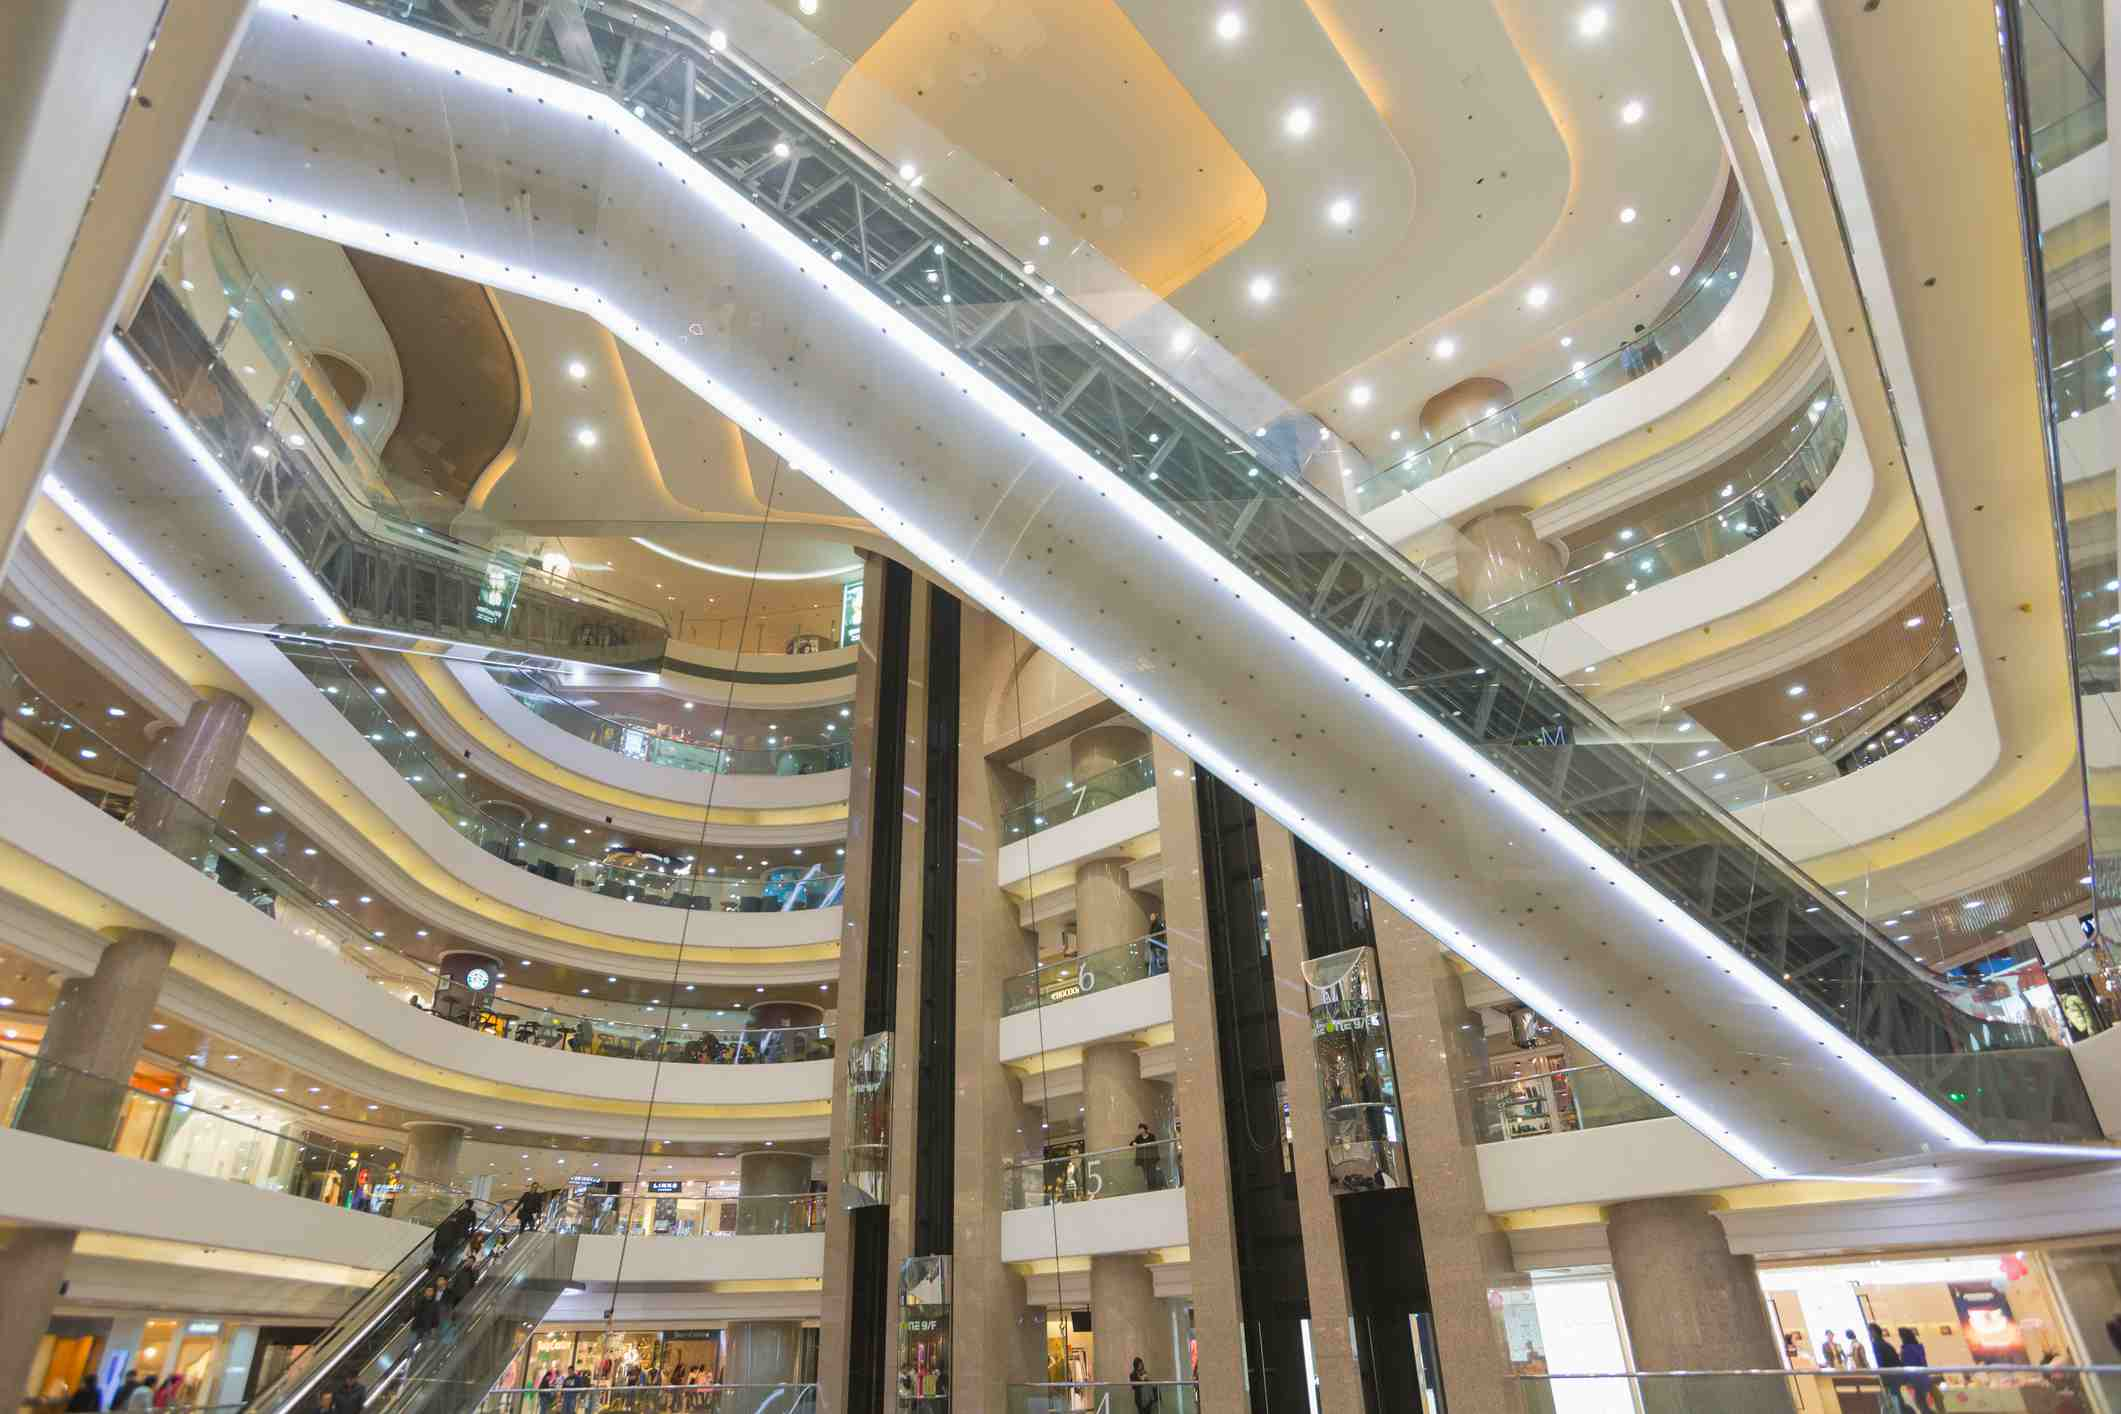 View of upper floors of Times Square shopping center, Hong Kong